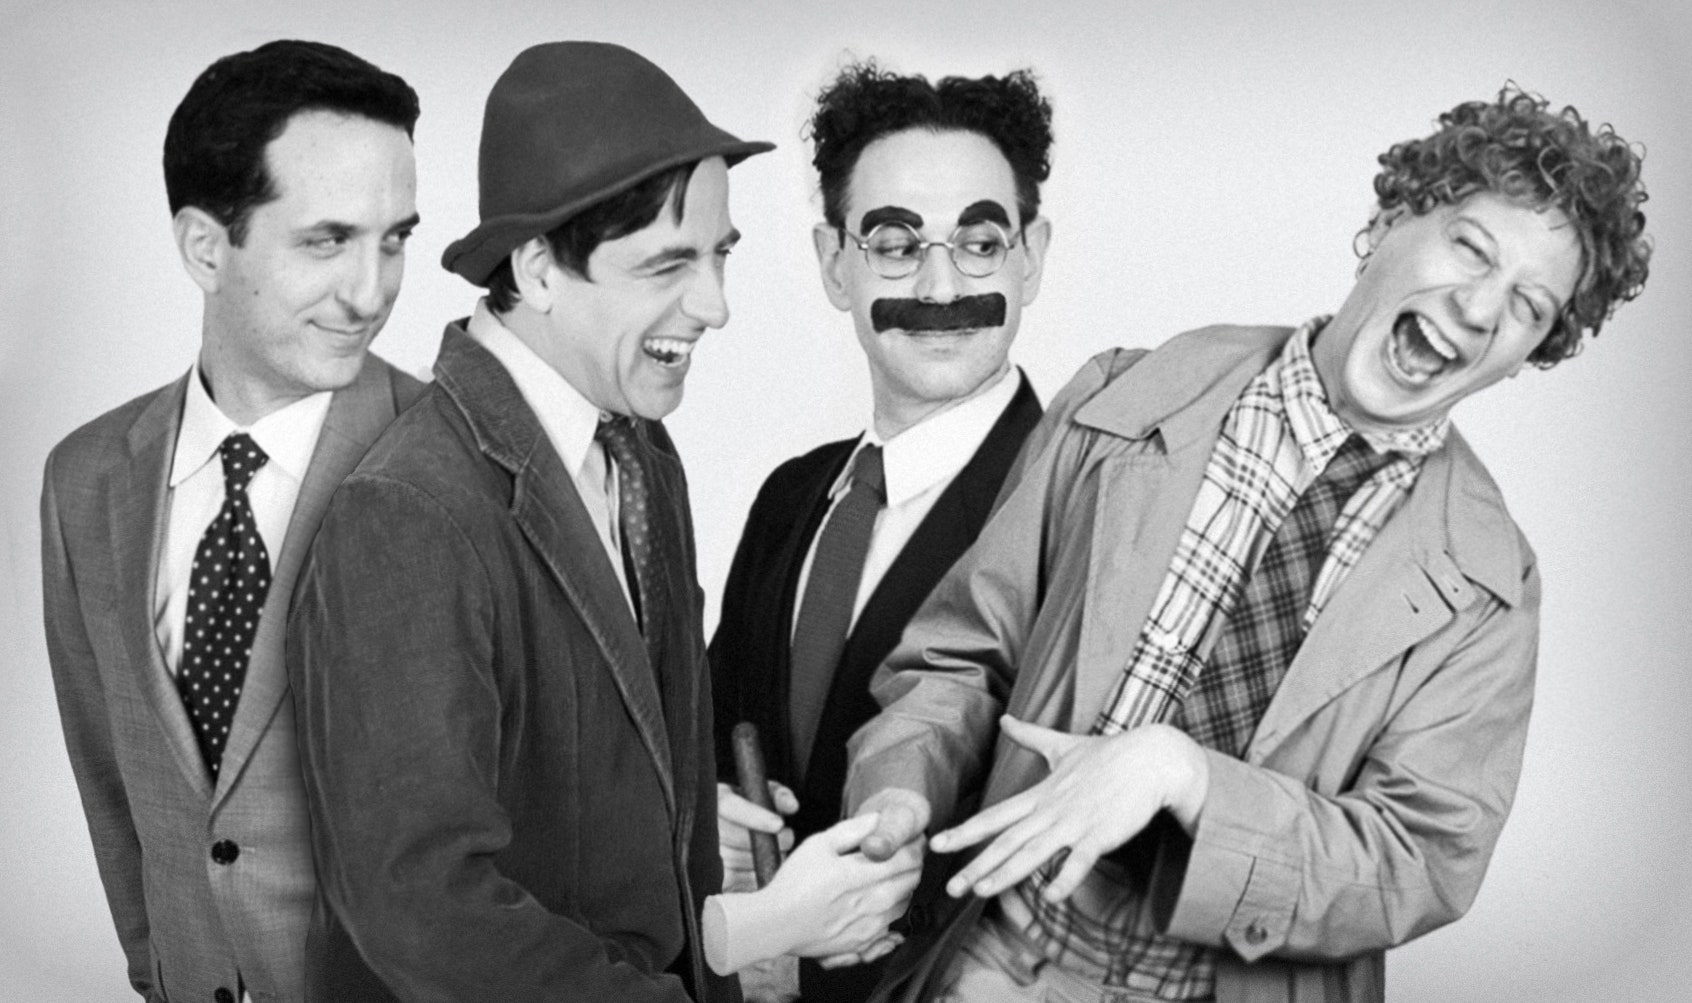 Professor Raoult Compares the Oxford RECOVERY Trial Academics to the Marx Brothers